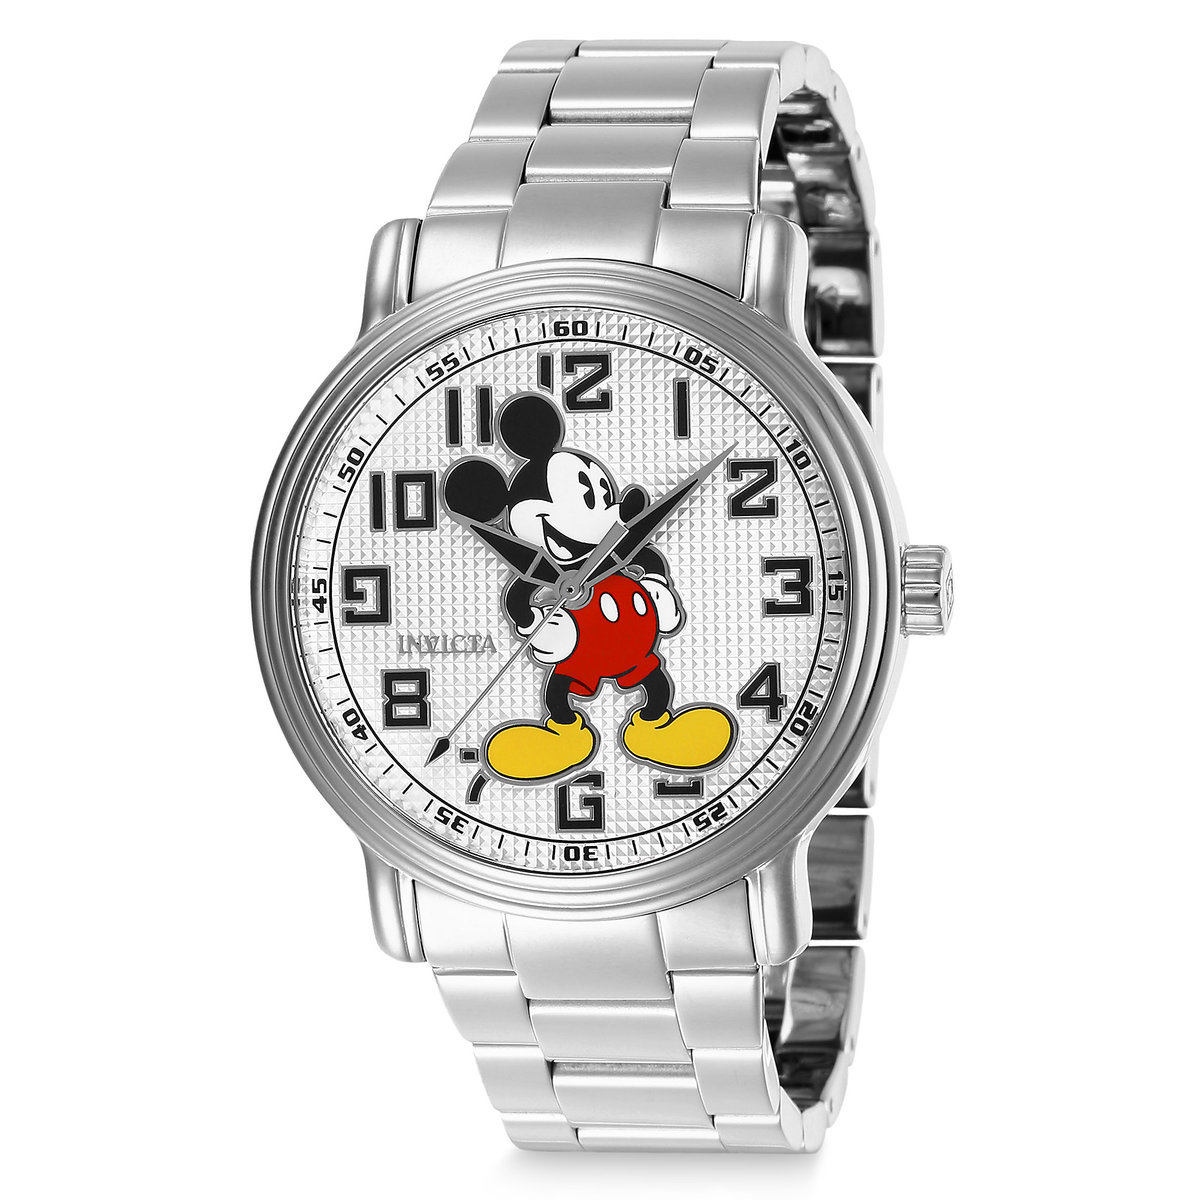 f0a86f4be13 Product Image of Mickey Mouse Watch for Men by INVICTA - Limited Edition # 1